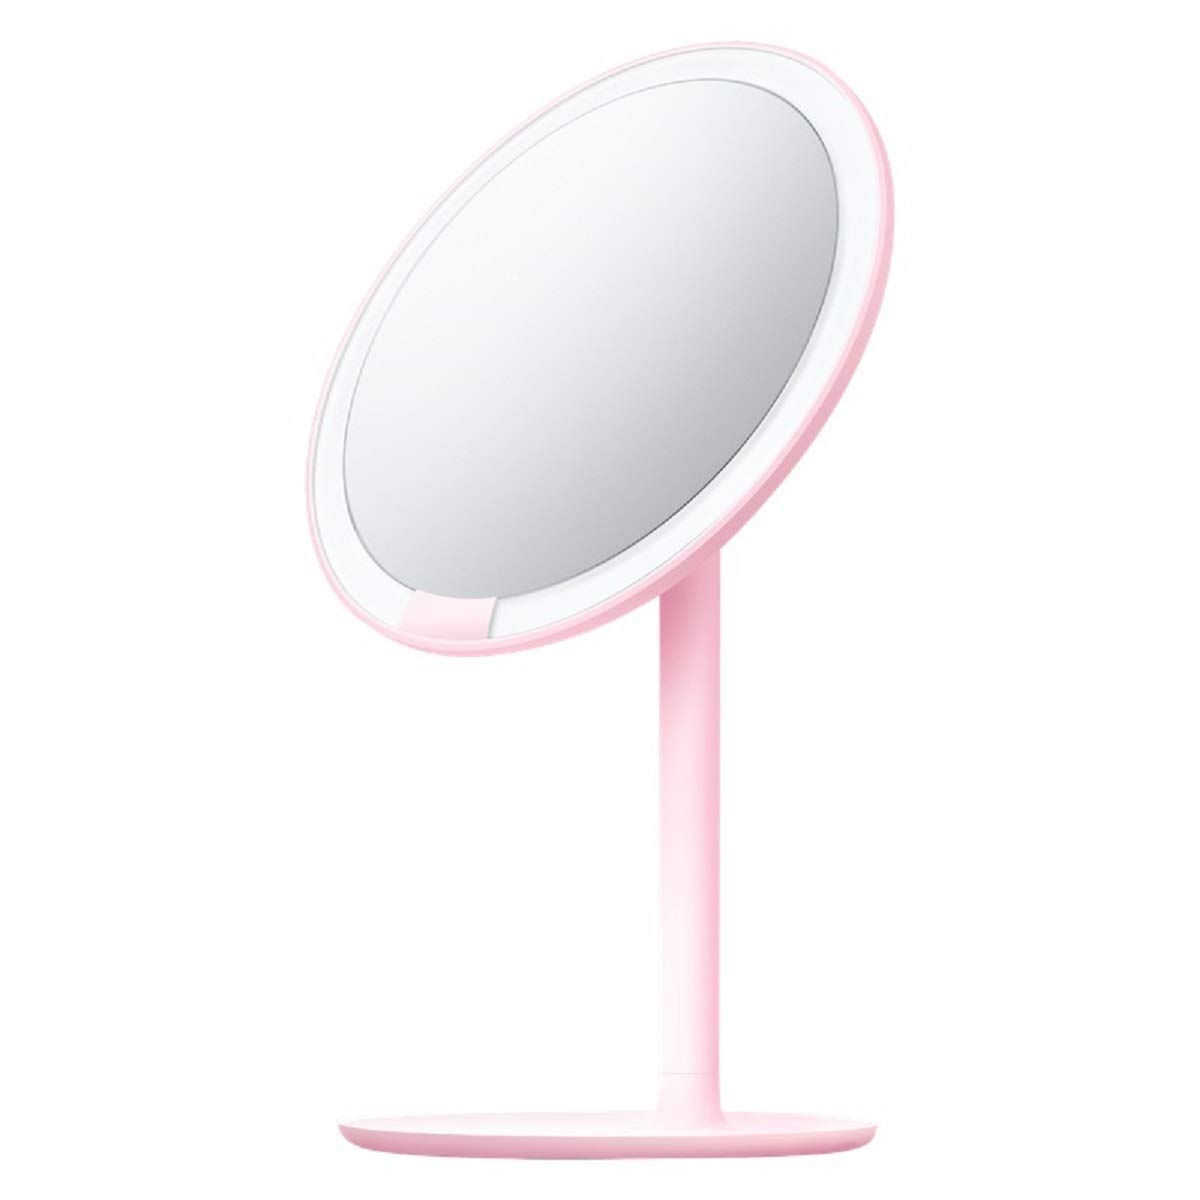 Makeup Mirror LED Fill Light Desktop Vanity Mirror Student Dormitory Mirror USB Charging Double-Sided 3X Magnification 60° Mirror Adjustment 6.5 inches